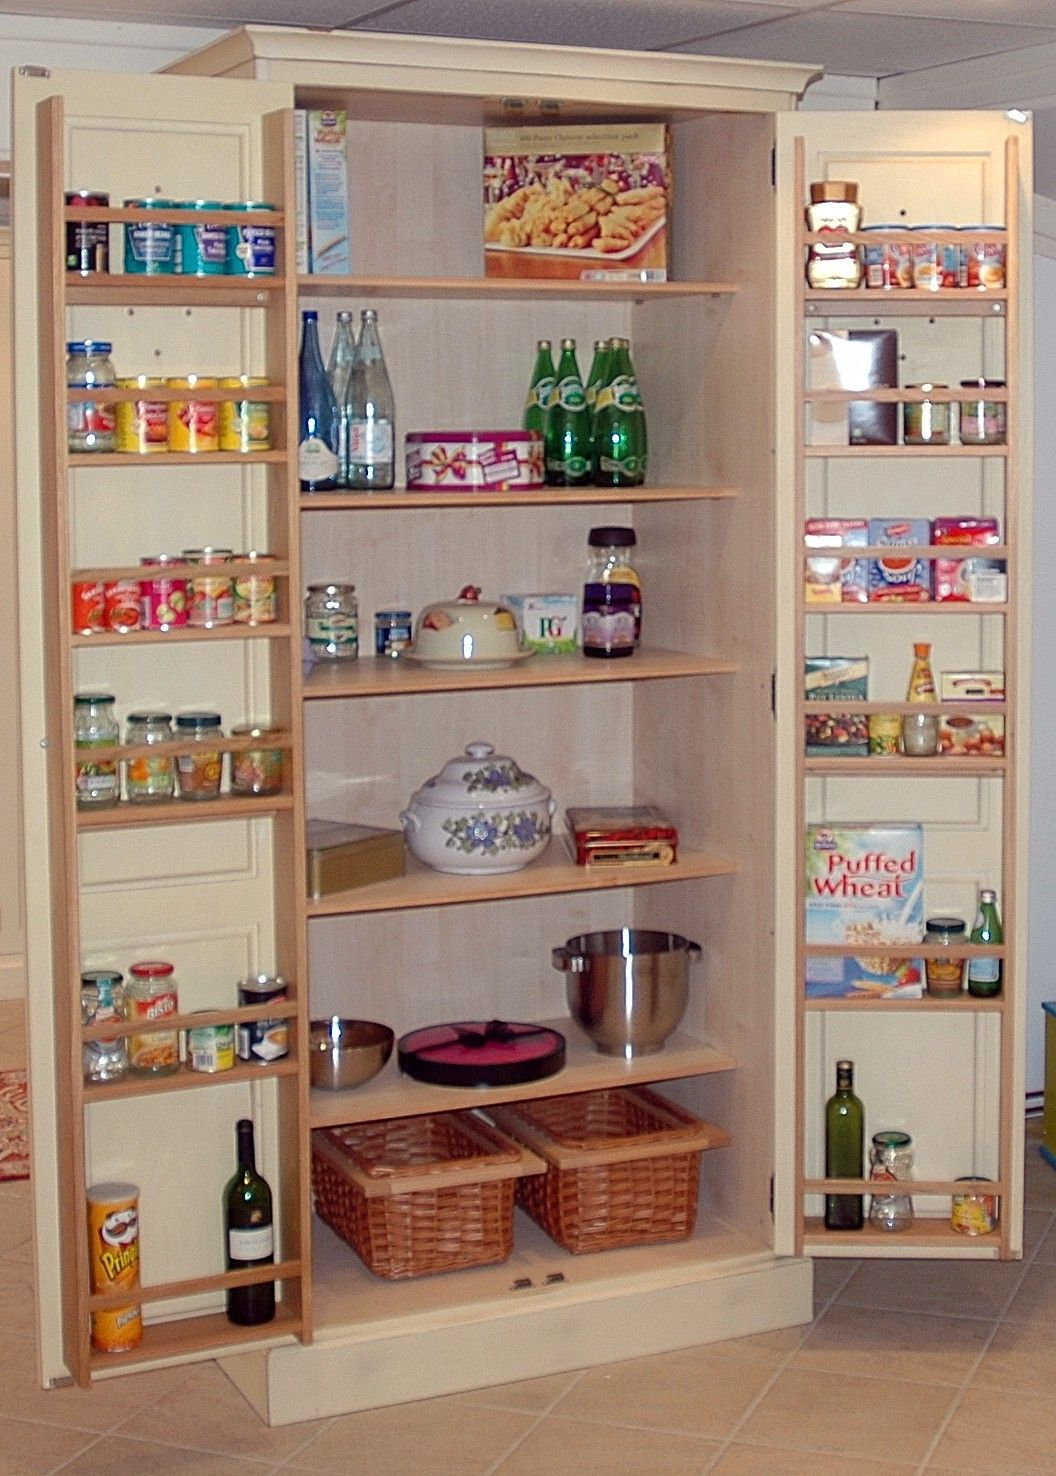 13 Kitchen Storage Ideas for Small Spaces Model Home